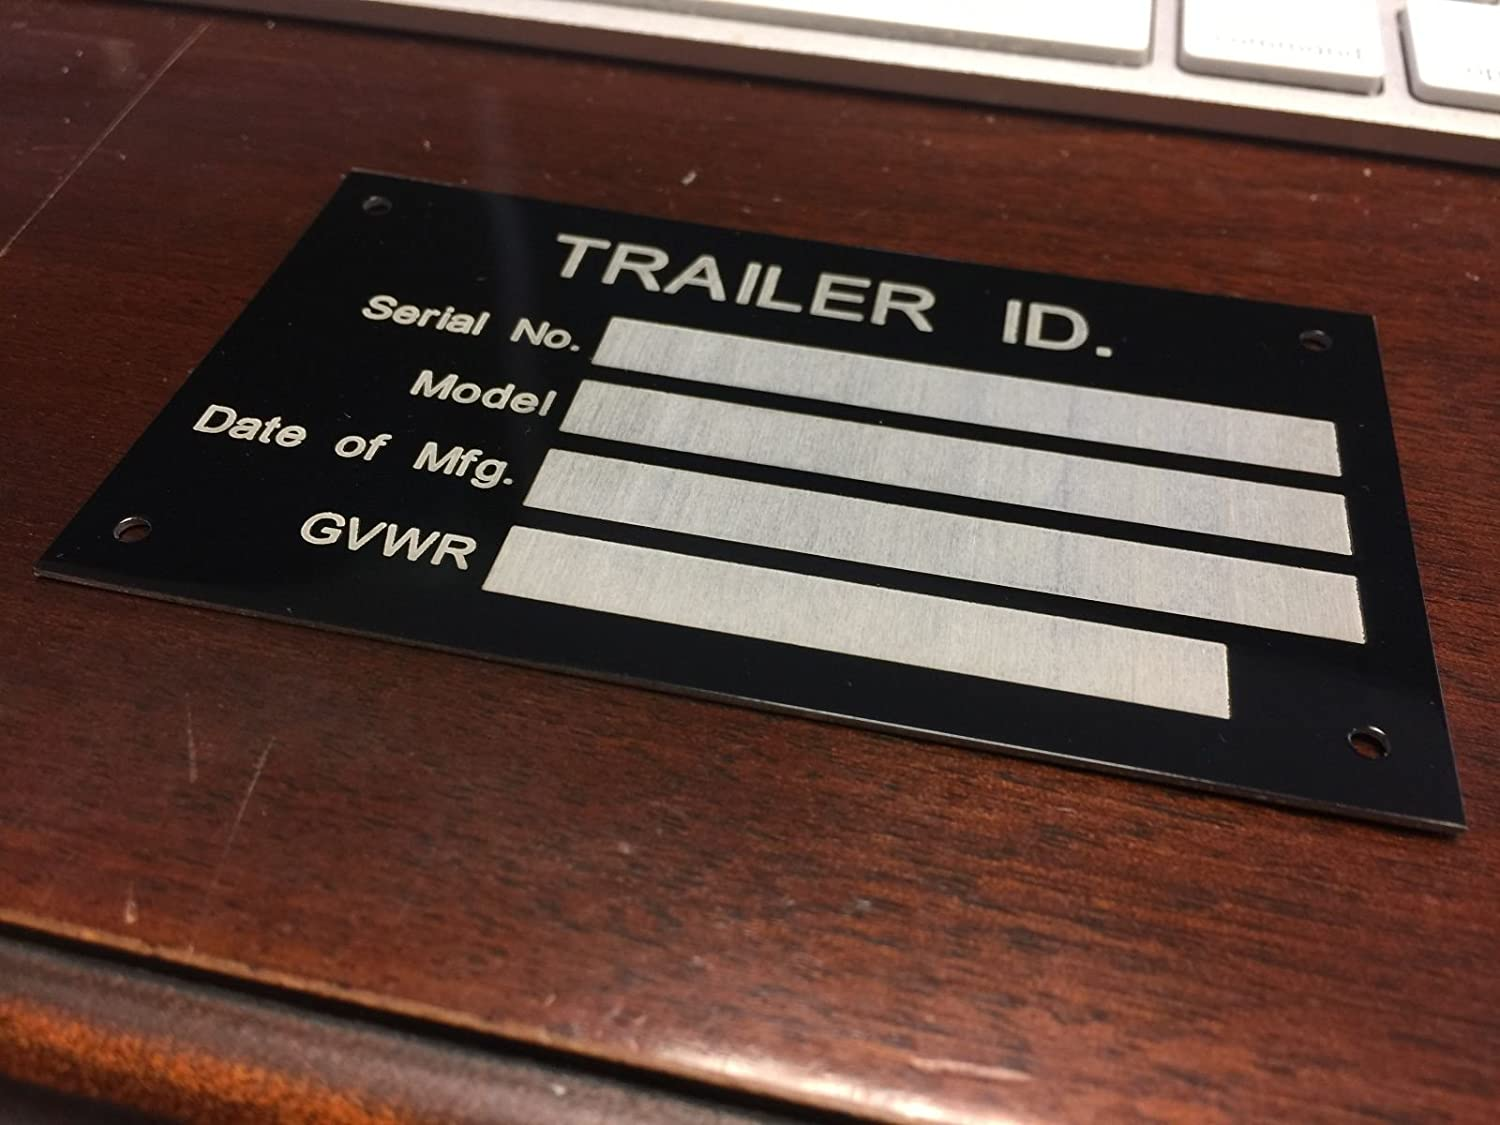 Aluminum Trailer ID Replacement Tag Vin Plate Serial GVWR Medical Blank  Black